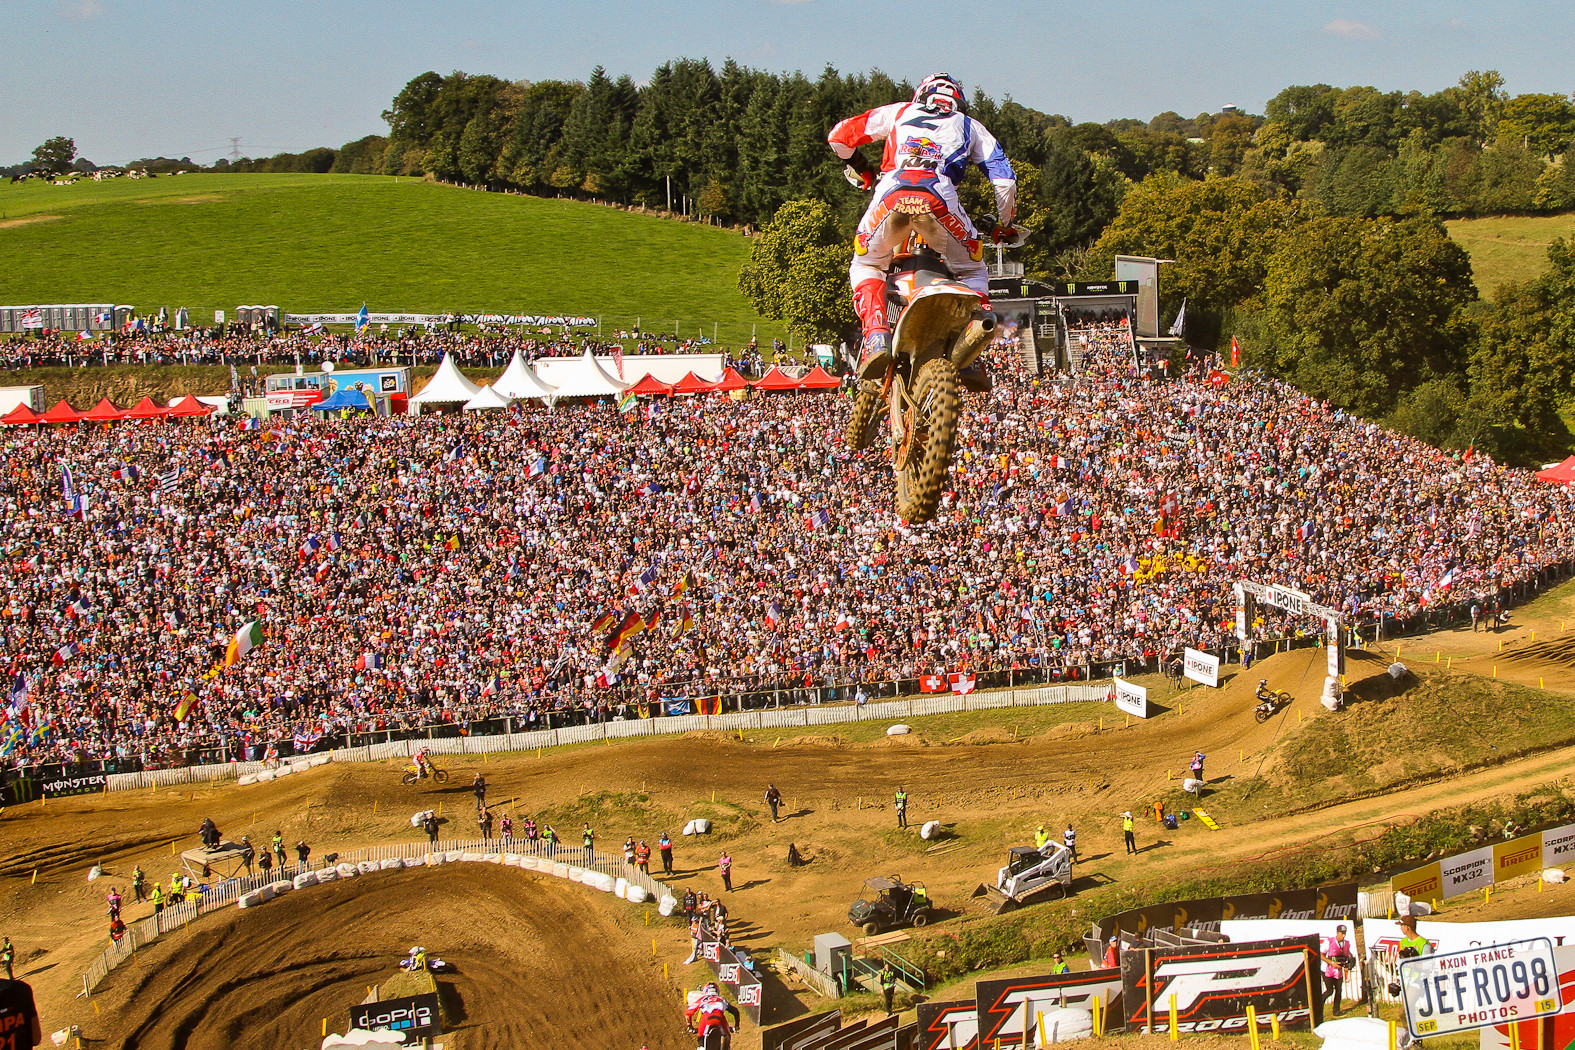 Marvin Musquin - Photo Blast: MXoN Sunday racing - Motocross Pictures - Vital MX